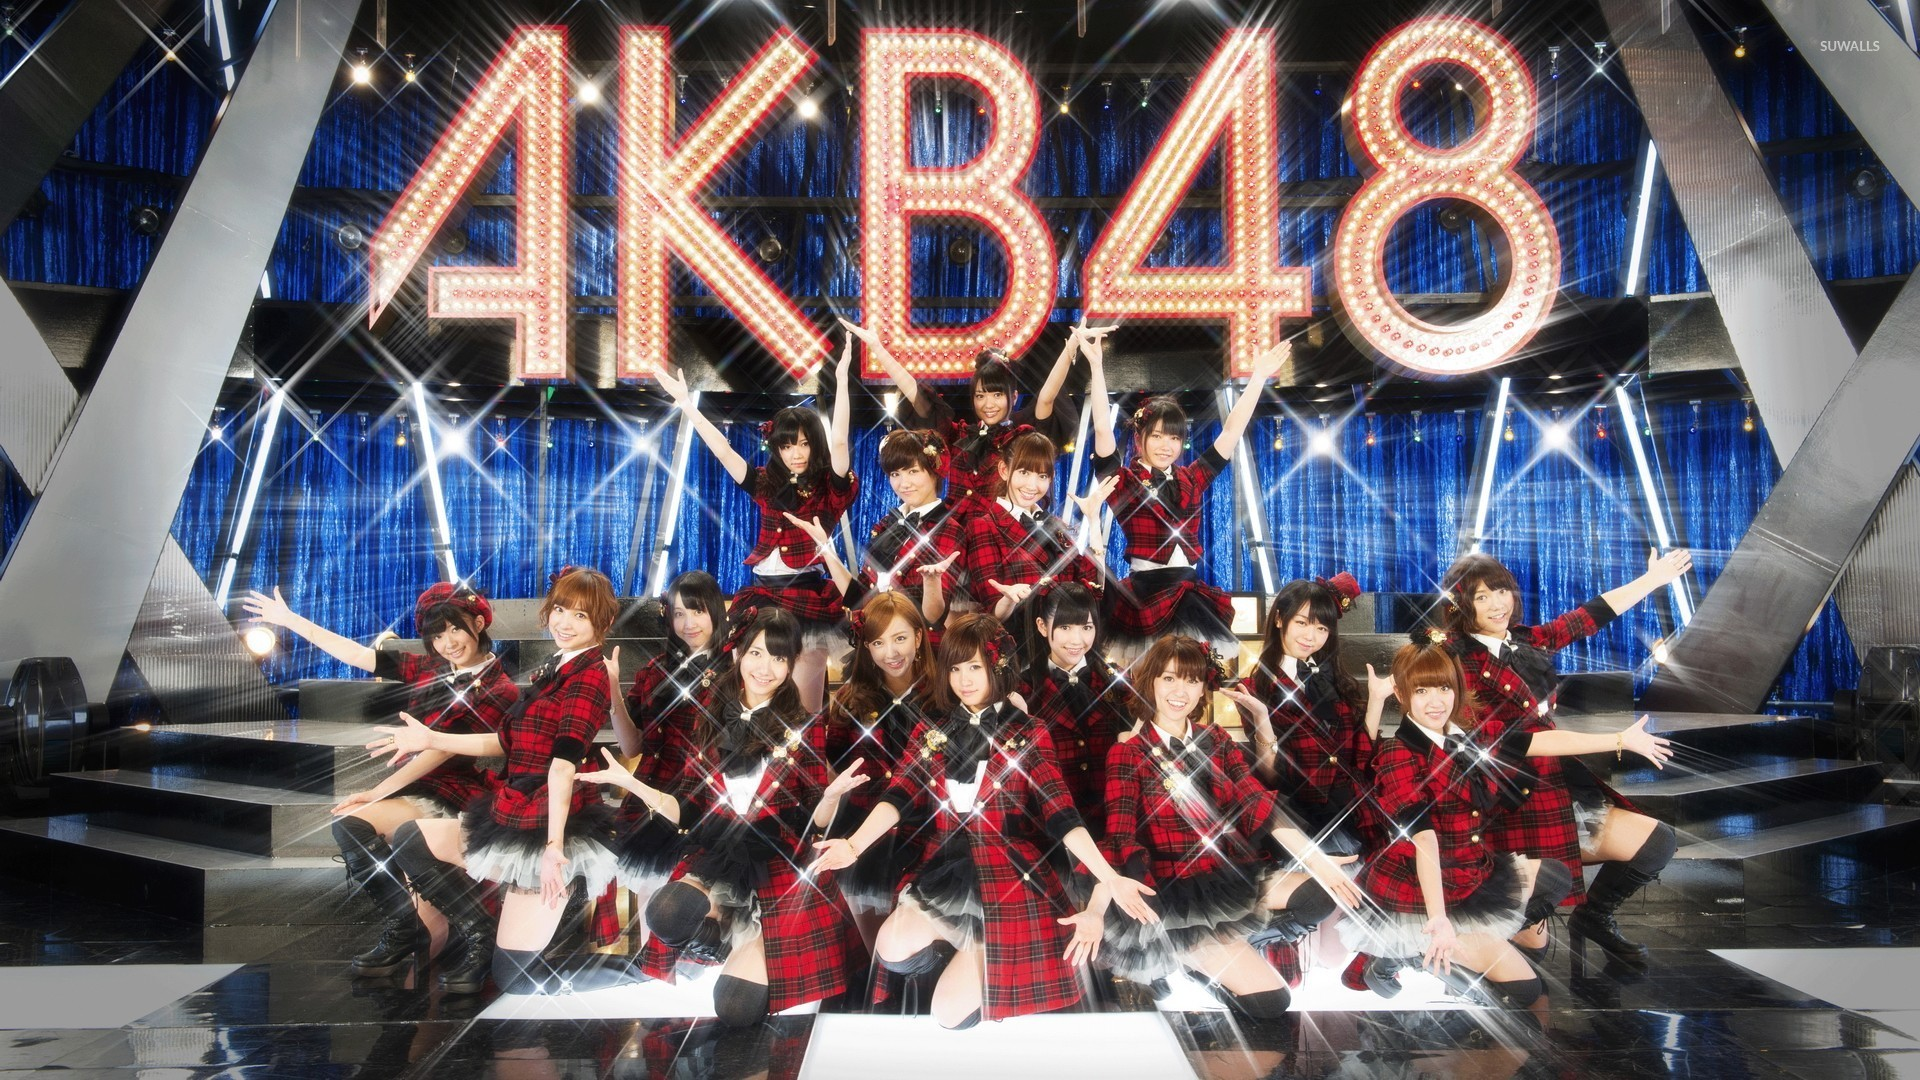 akb48 7 wallpaper music wallpapers 29728